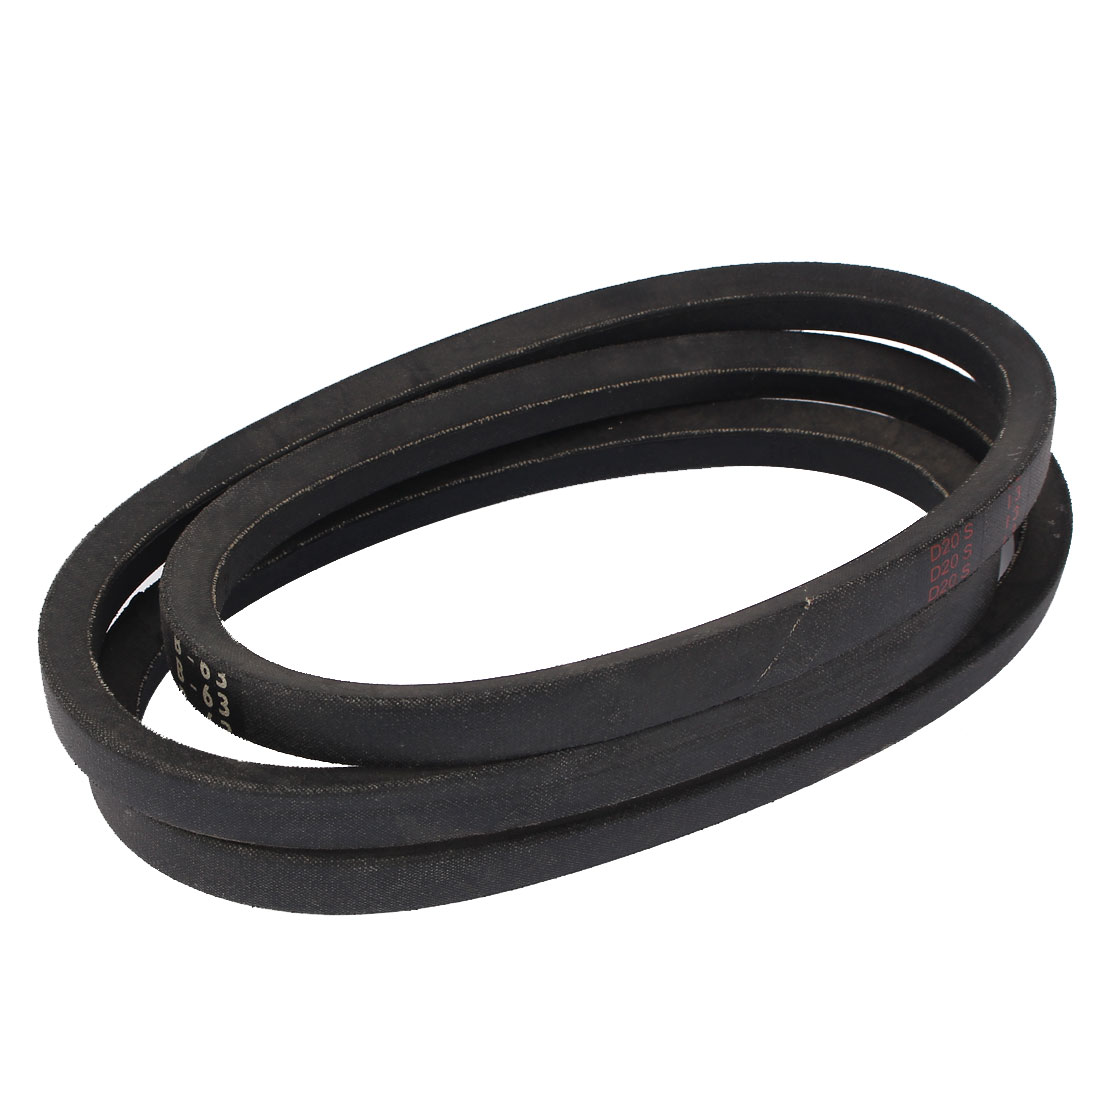 "B63 63"" x 1/2"" Industrial Machine Rubber Drive Belt V-Belt"